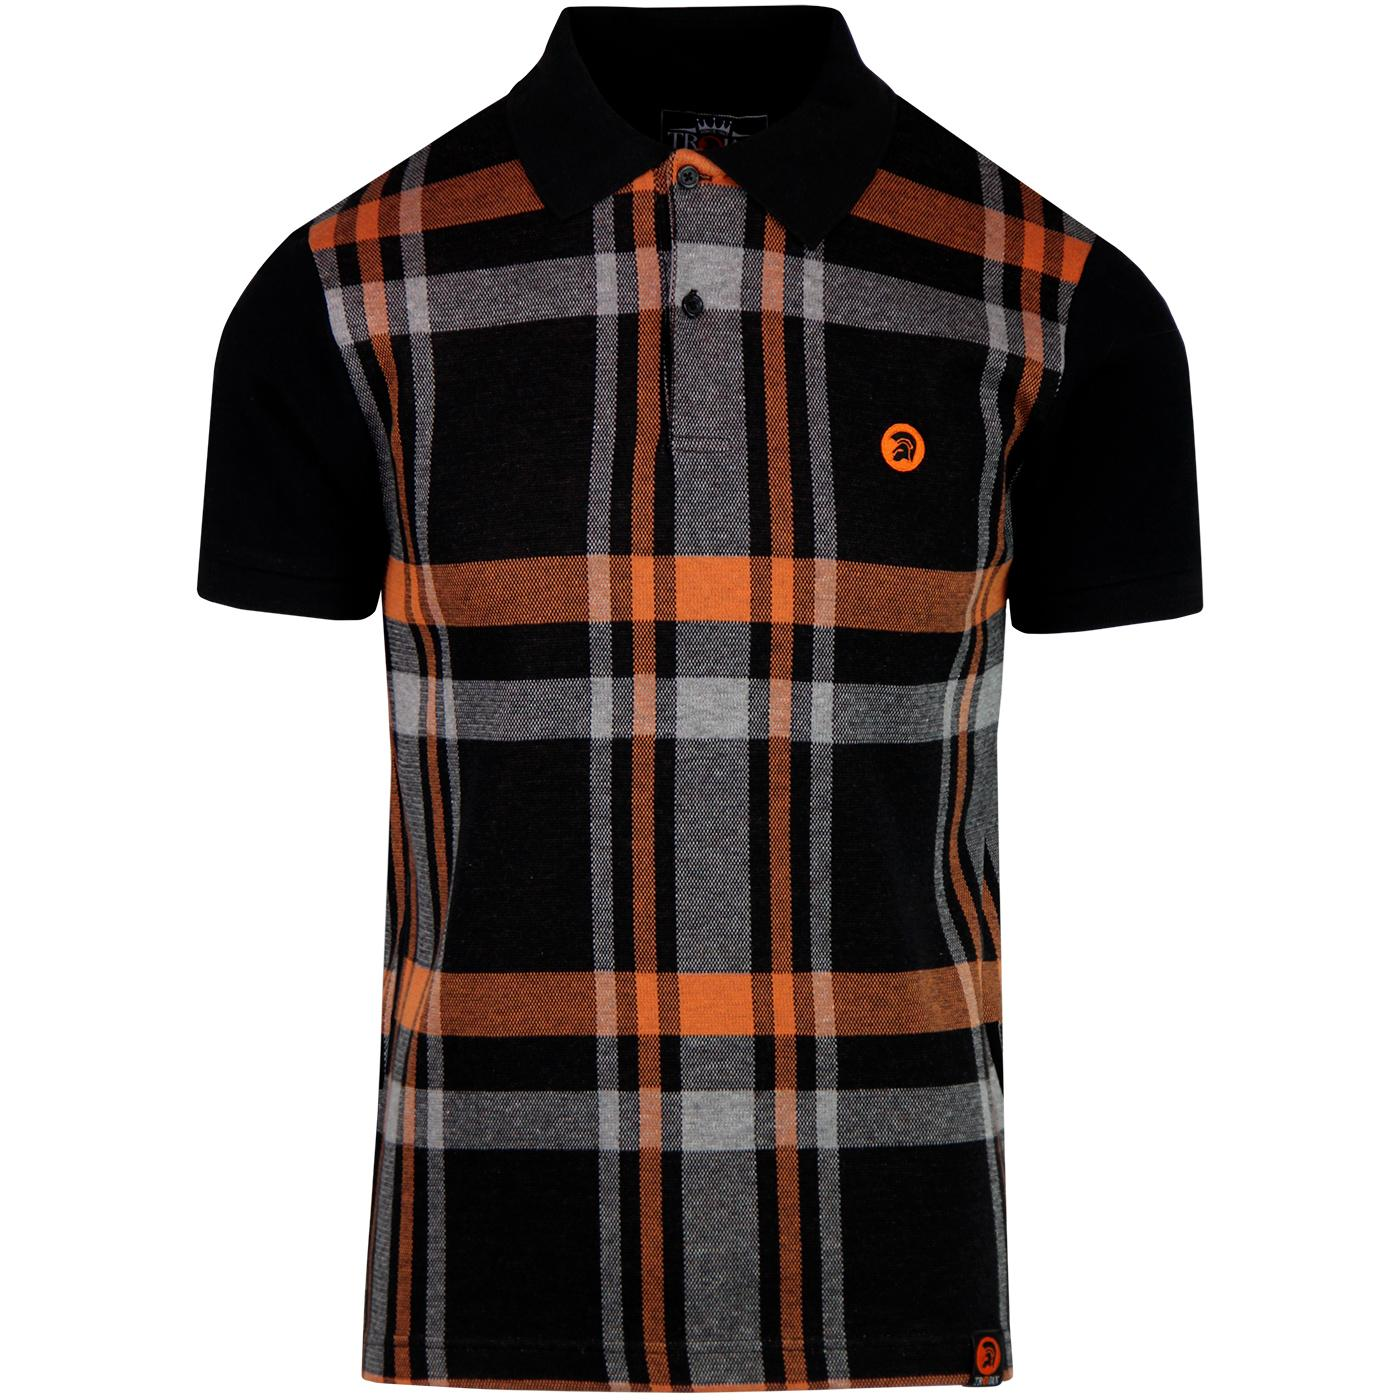 TROJAN RECORDS Retro Mod Check Front Polo Top (B)